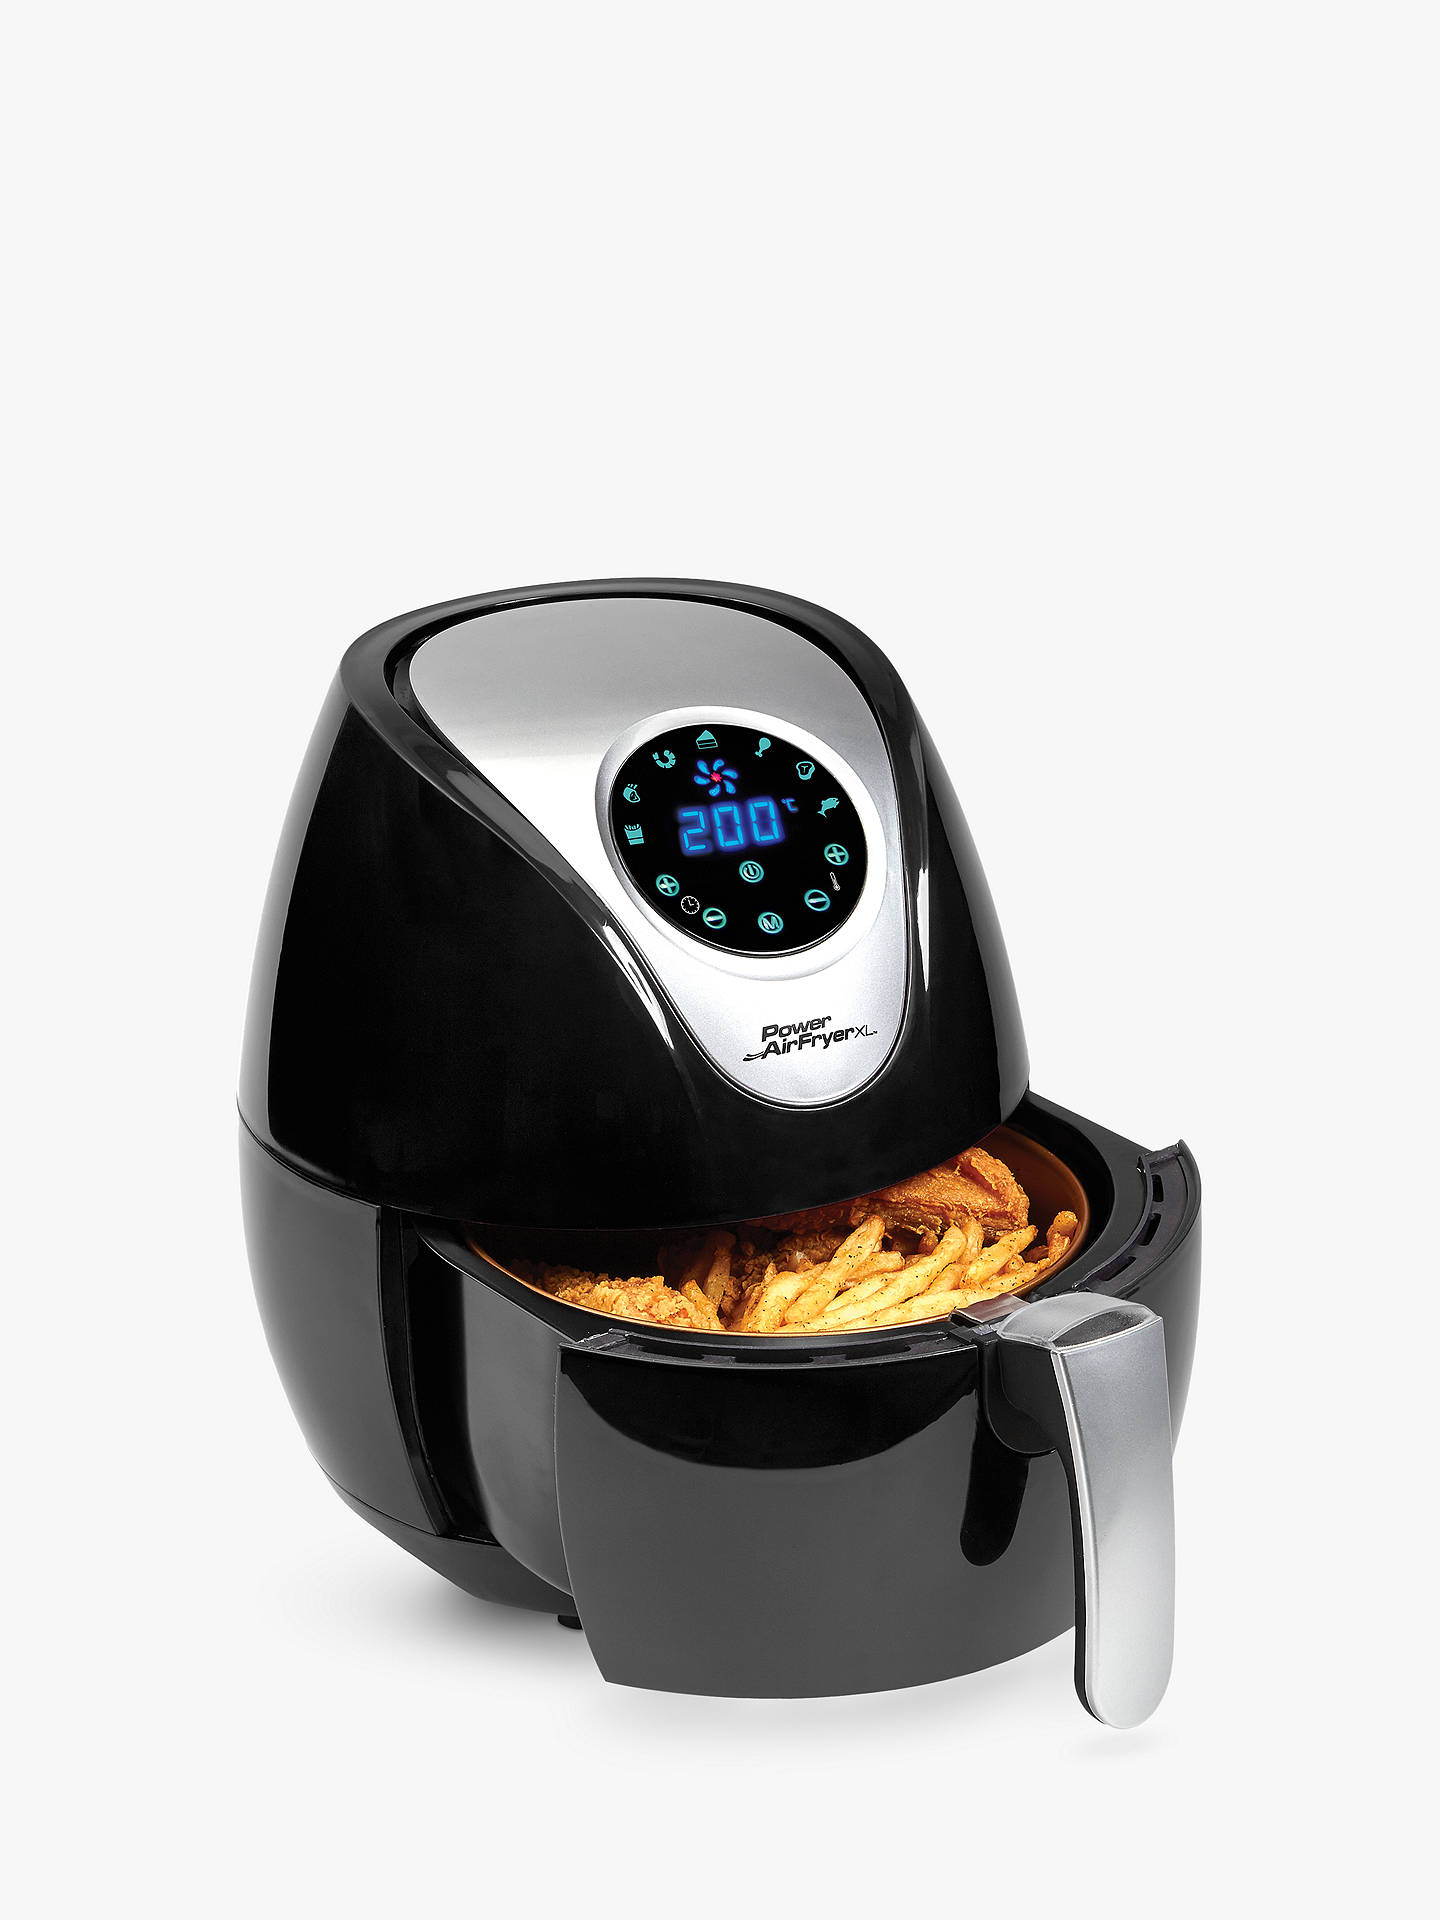 BuyPower Air Fryer XL 5L, Black Online at johnlewis.com